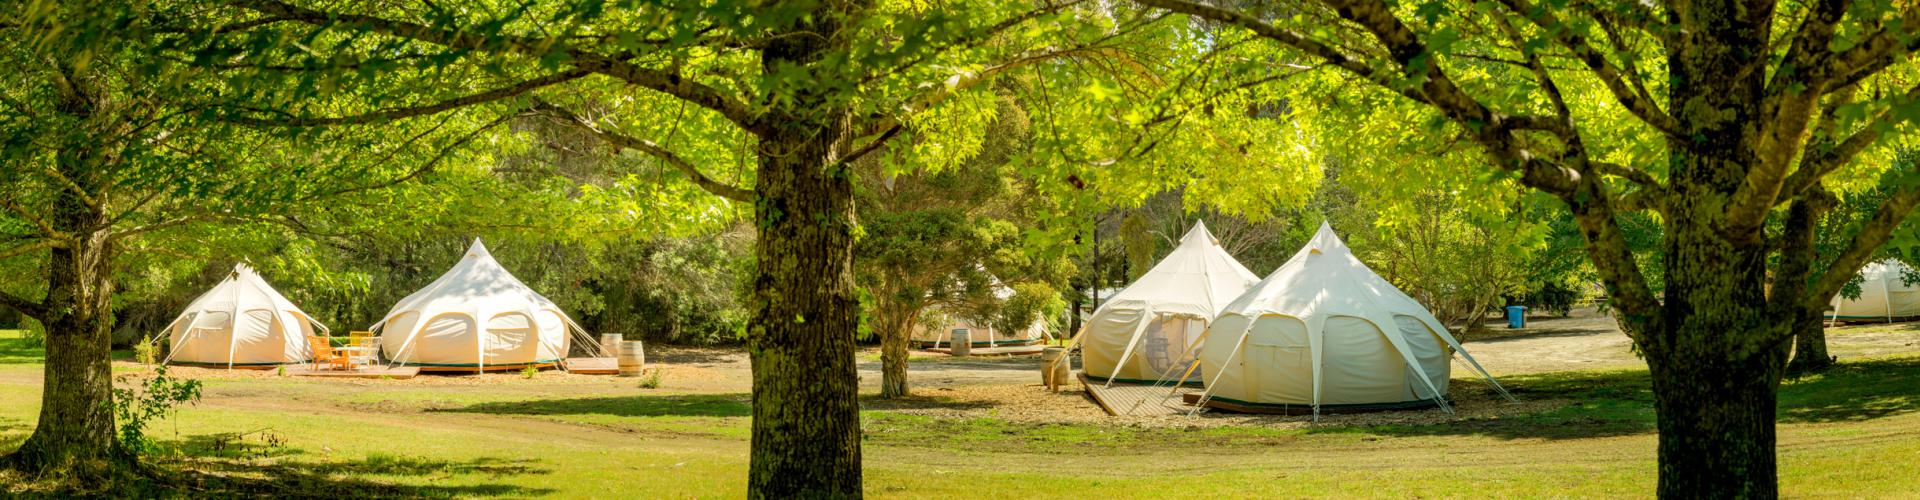 BIG4 Yarra Valley Park Lane Holiday Park - Glamping Belle Tents